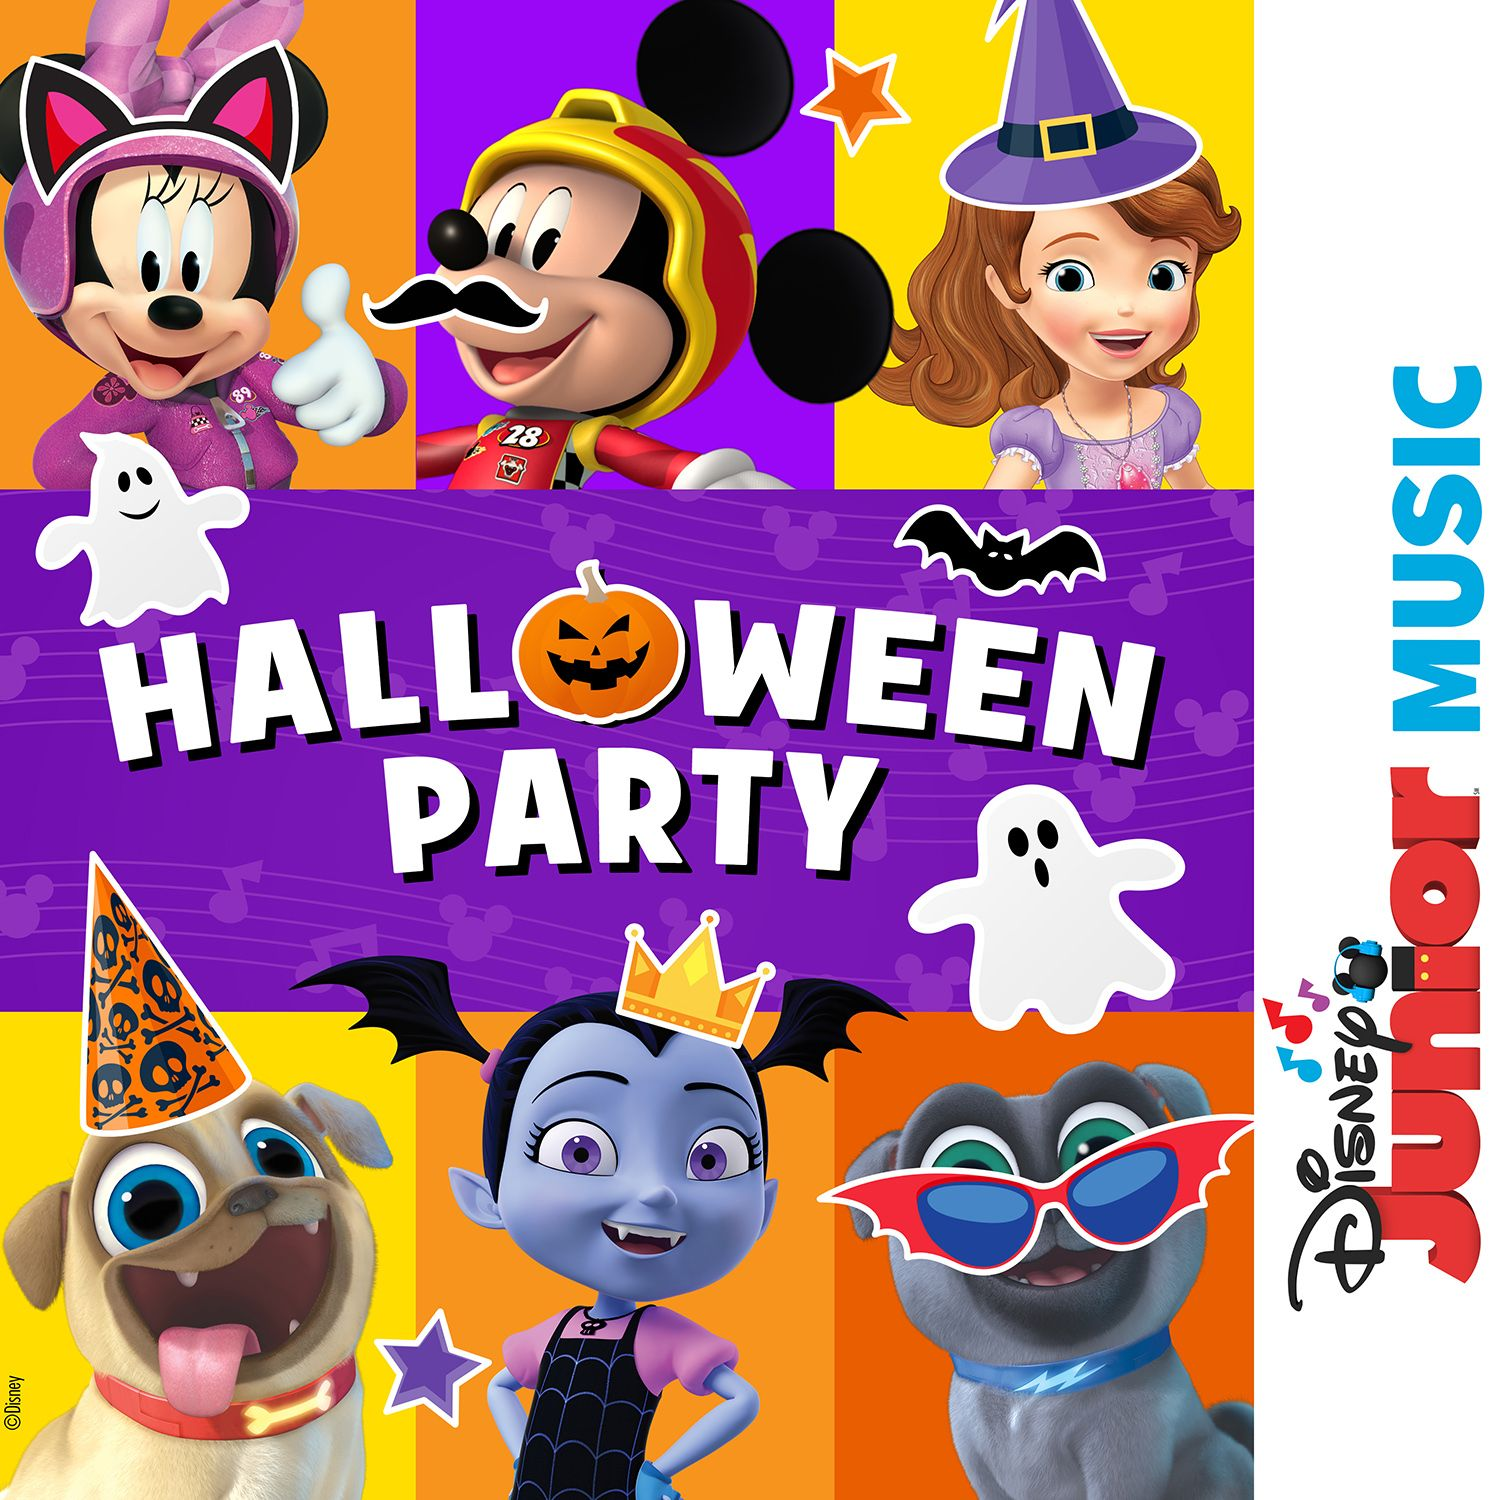 get ready for halloween with disneyjunior halloween party featuring tons of spook tacular songs your children will love to sing along to